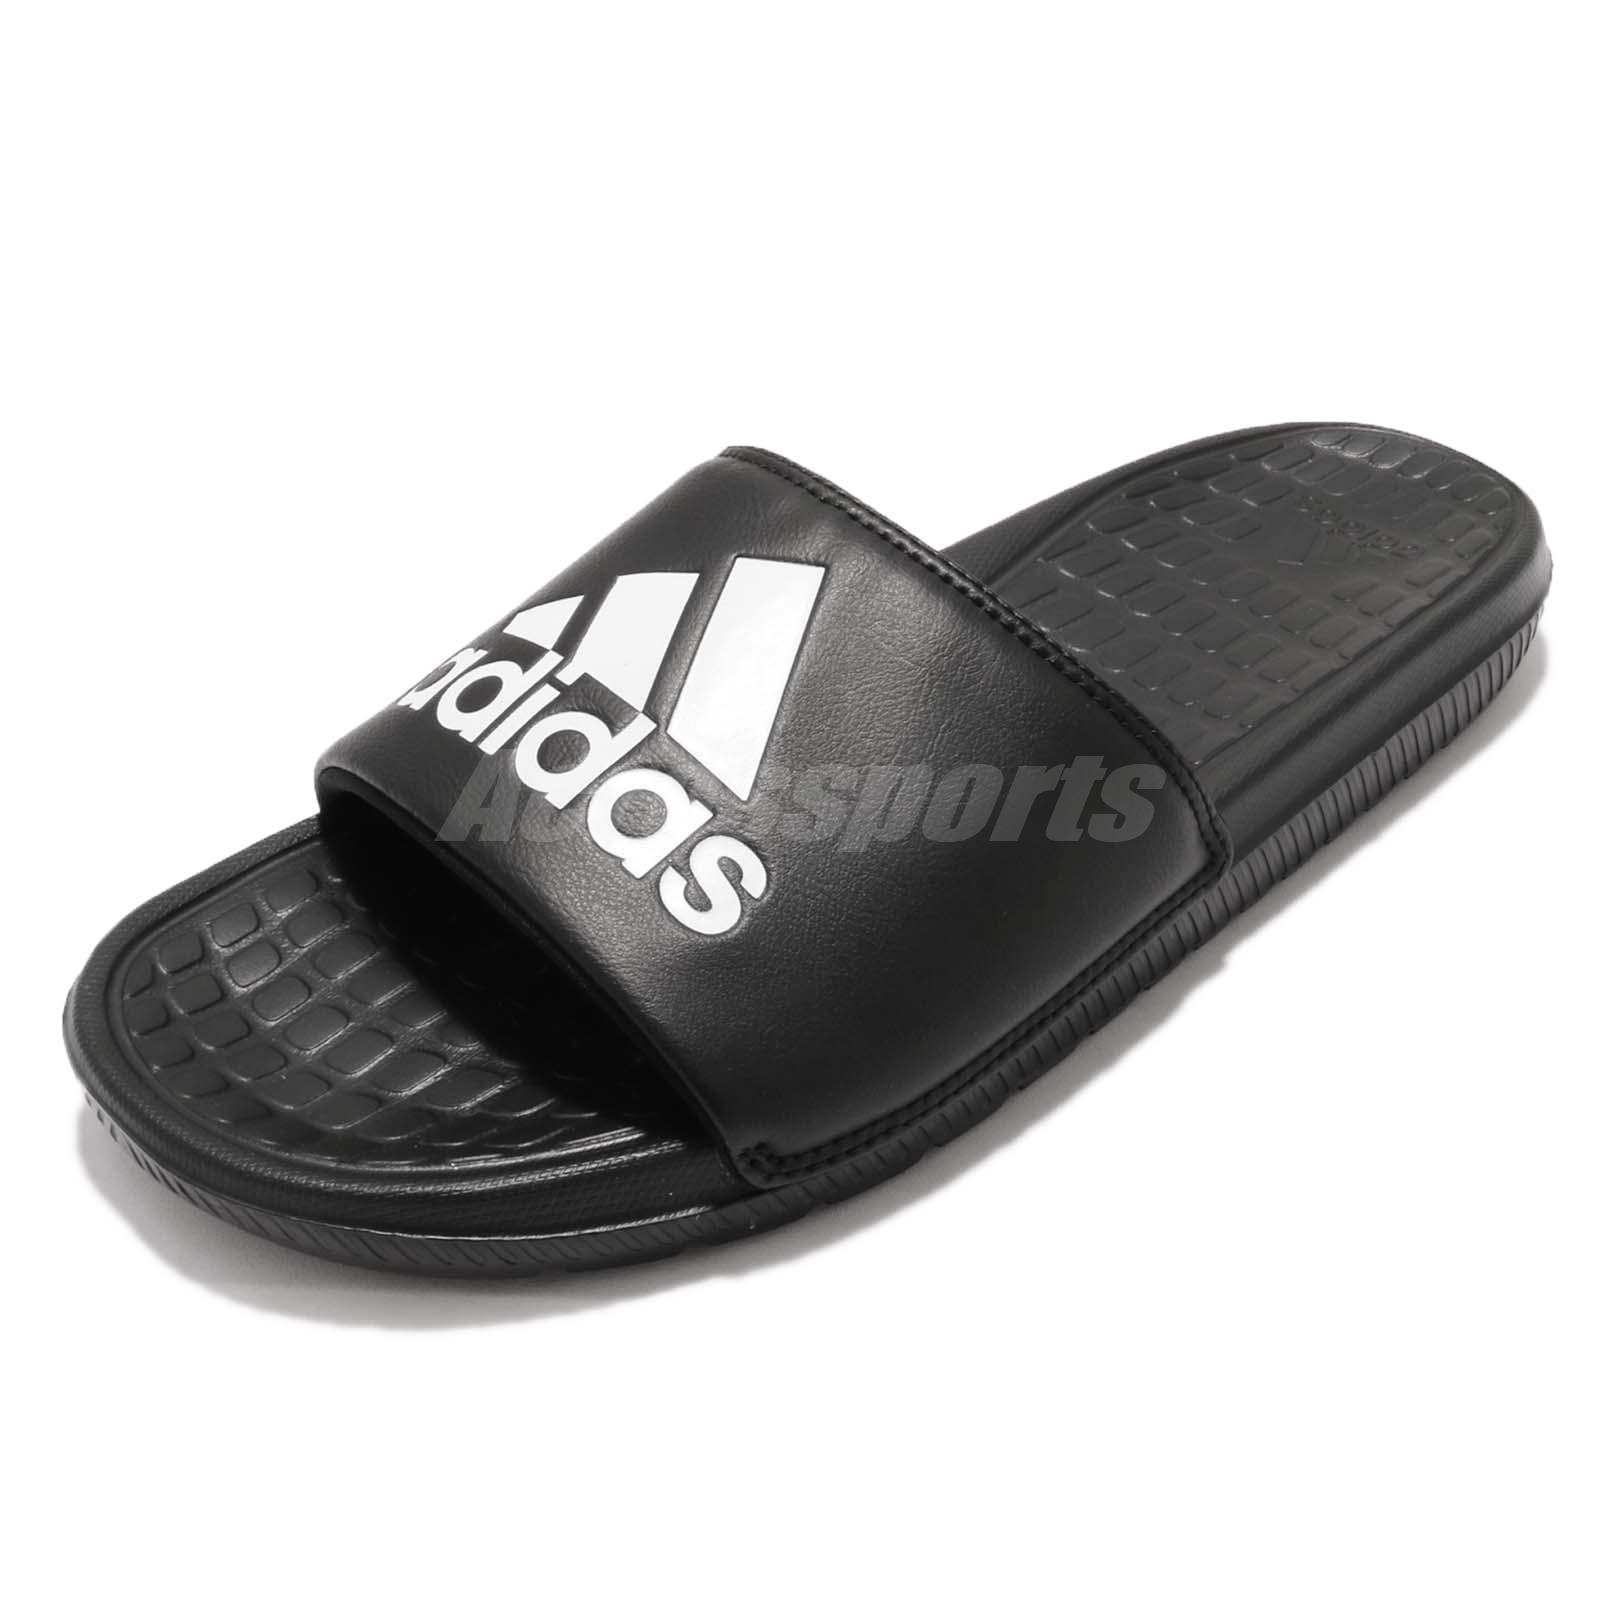 brand new 2a8f9 62660 adidas Voloomix Logo Black White Men Sports Sandal Slides Slippers CP9446